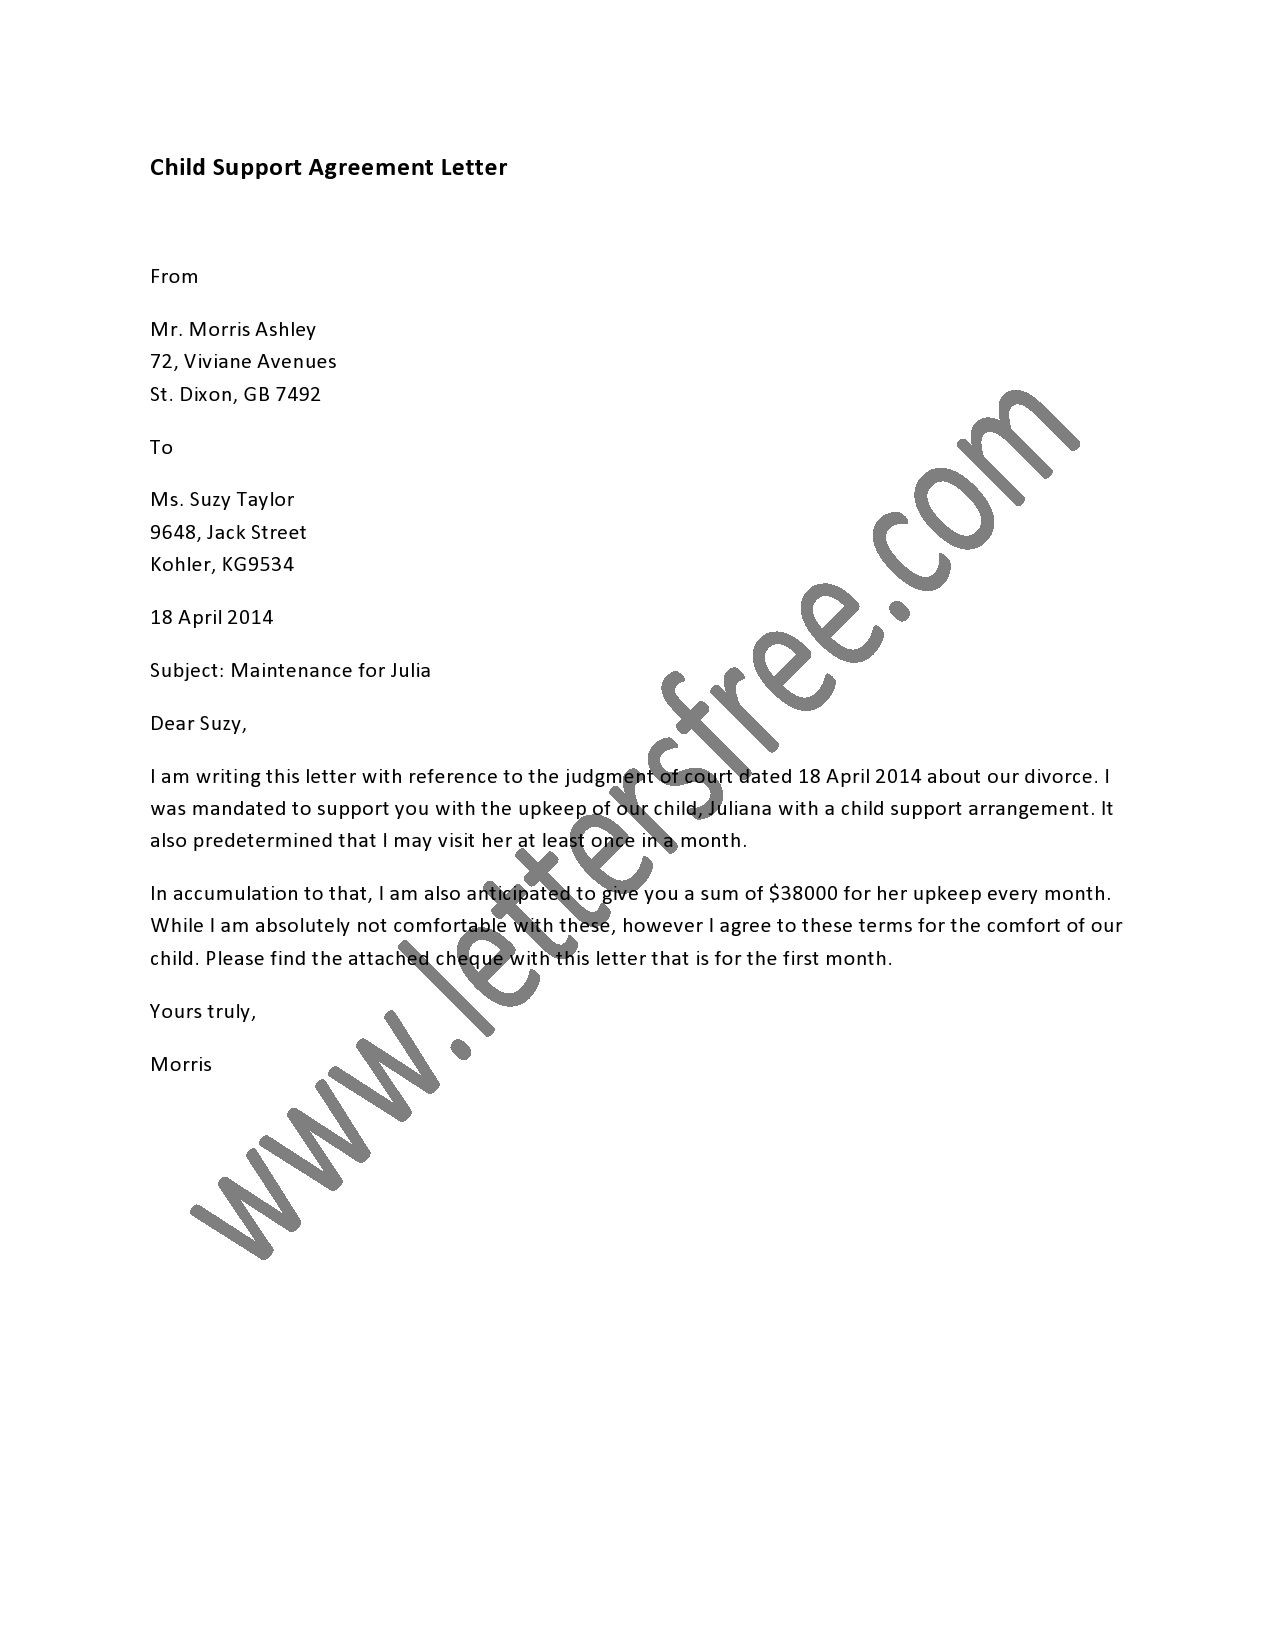 Child Support Agreement Letter  Child Support And Child